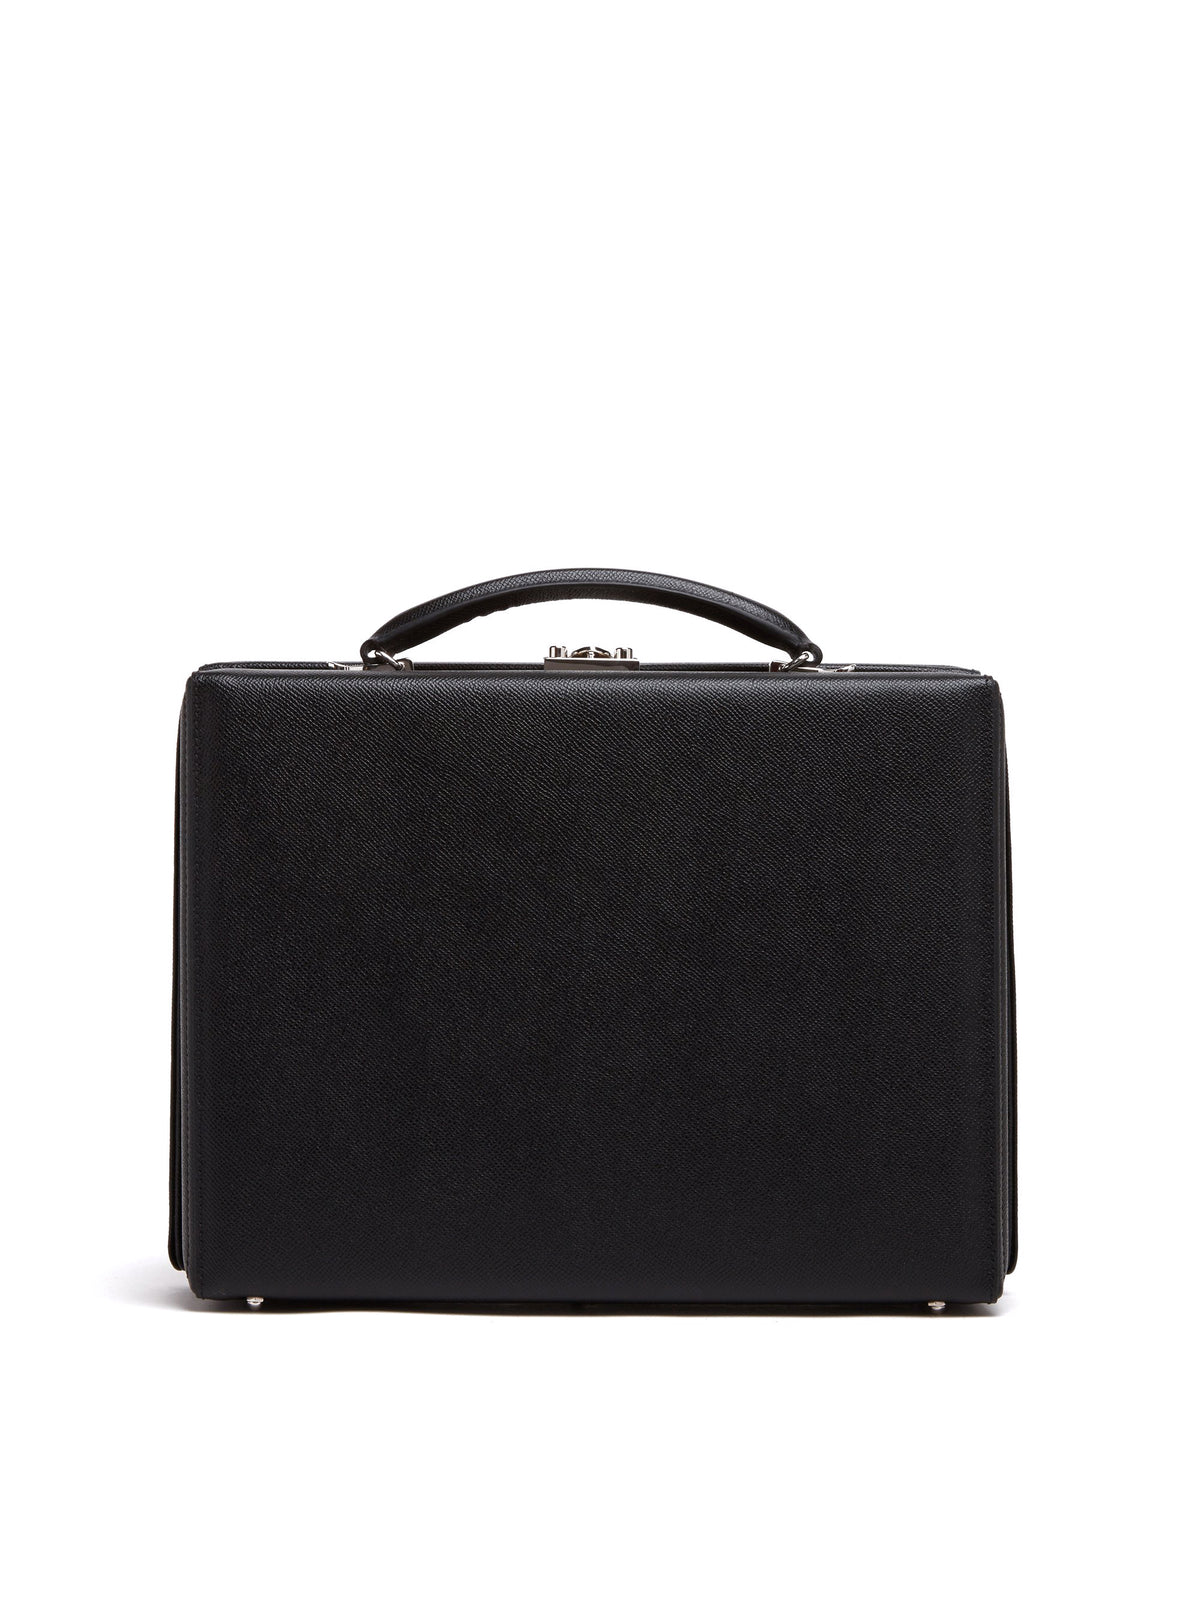 Mark Cross Grace Small Leather Briefcase Saffiano Black Back